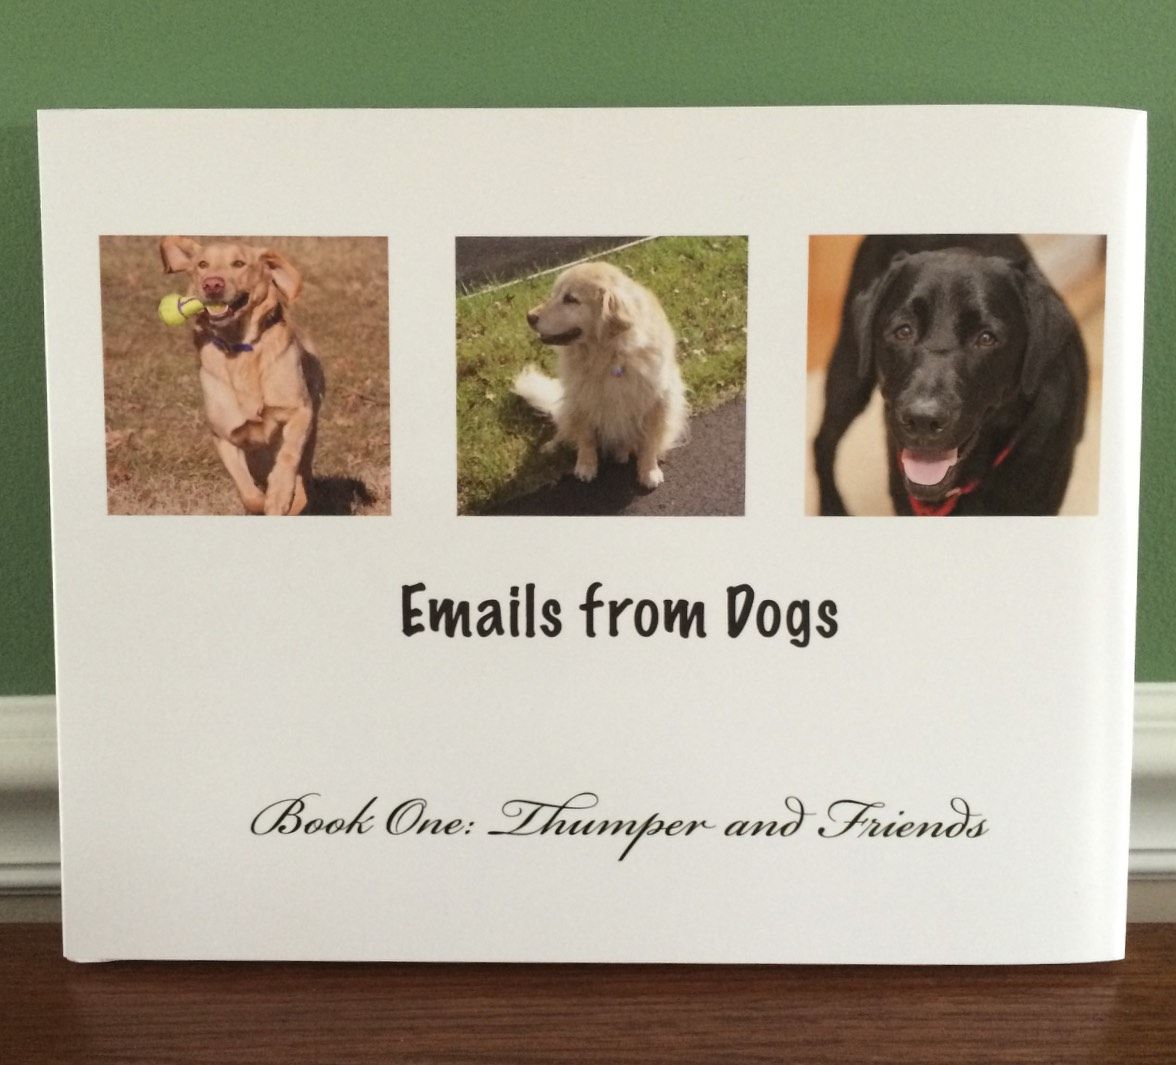 Emails from Dogs, Book One